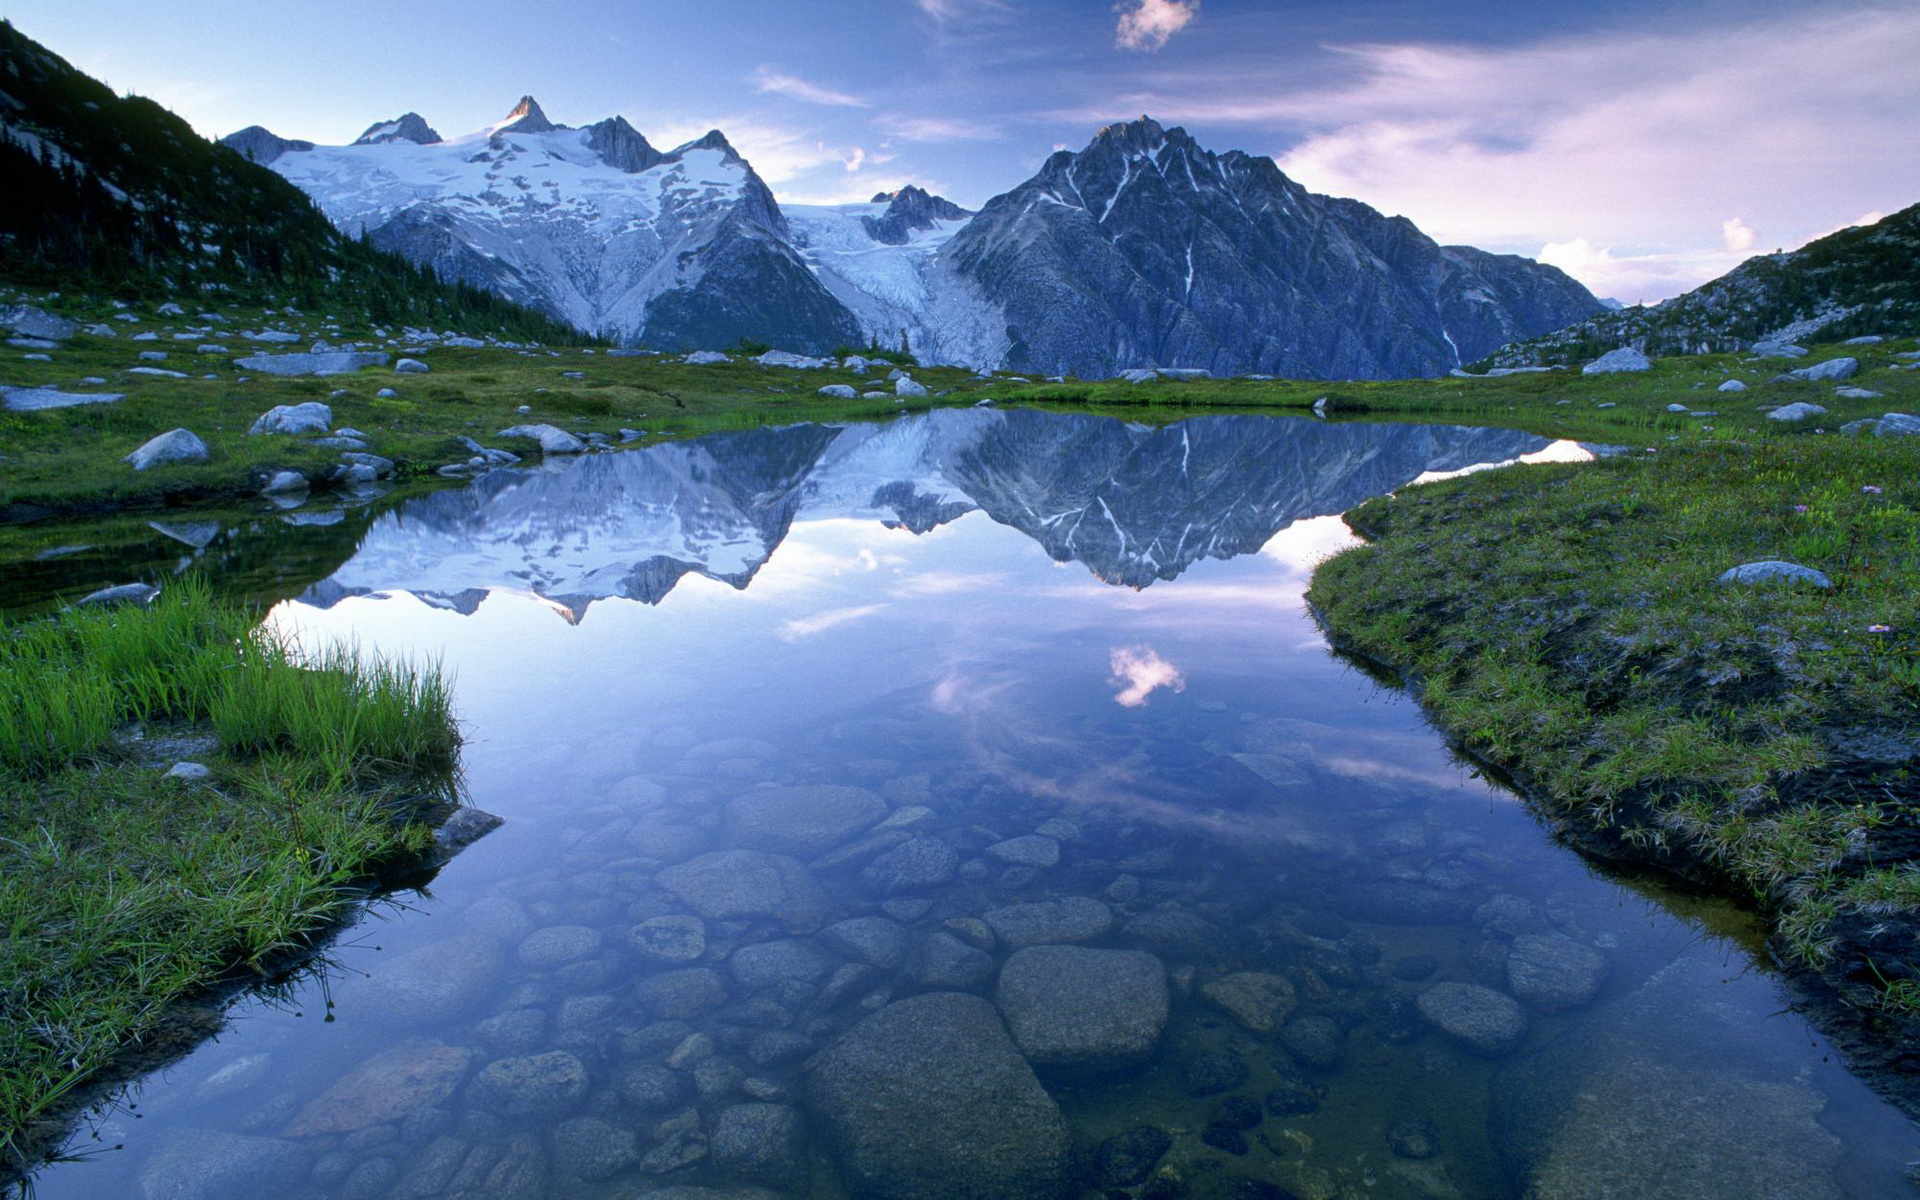 Hd Wallpaper Landscape Pictures 5 HD Wallpapers